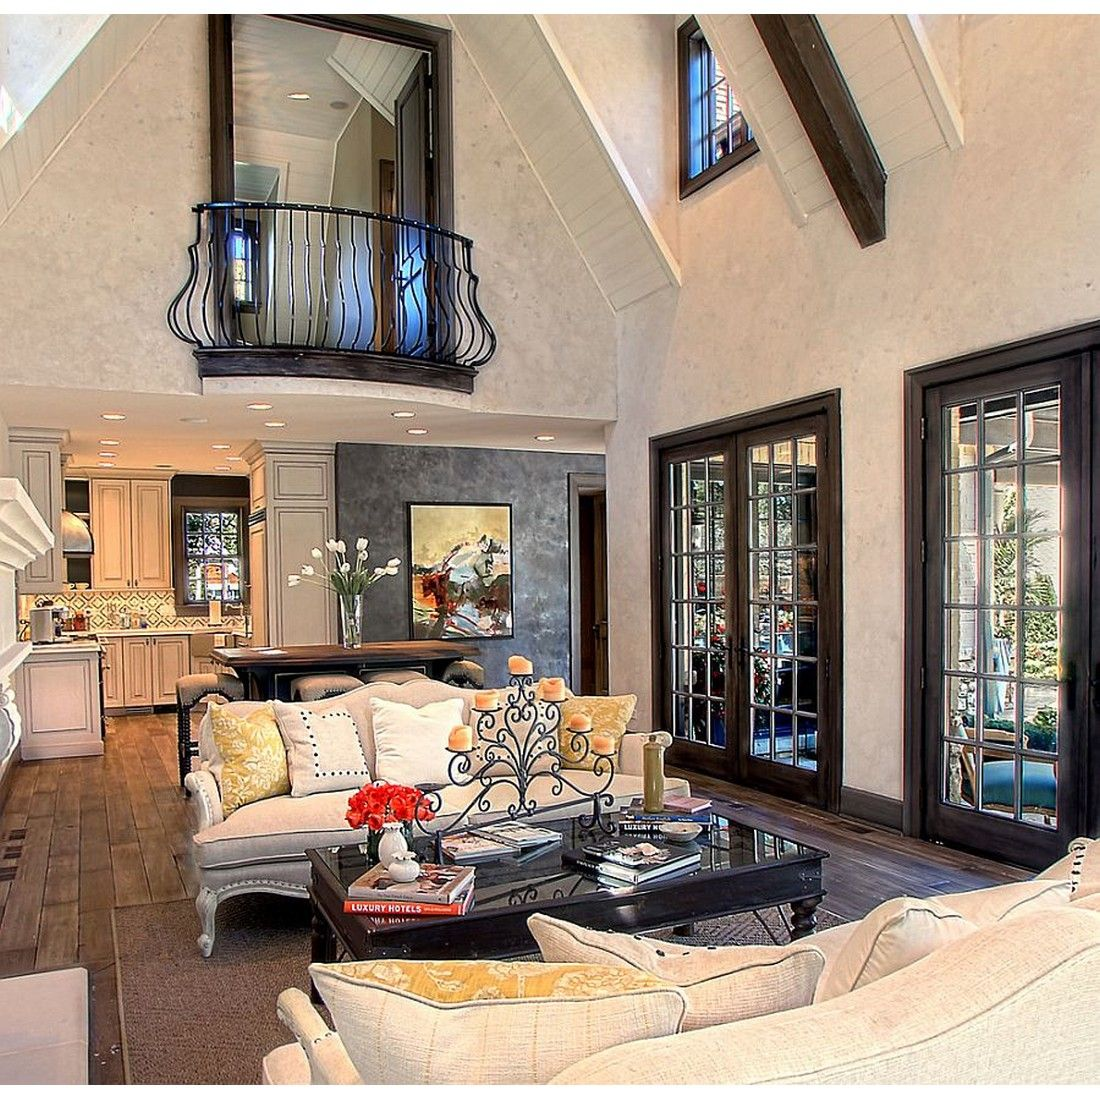 single indoor balcony that facing the living room pretty